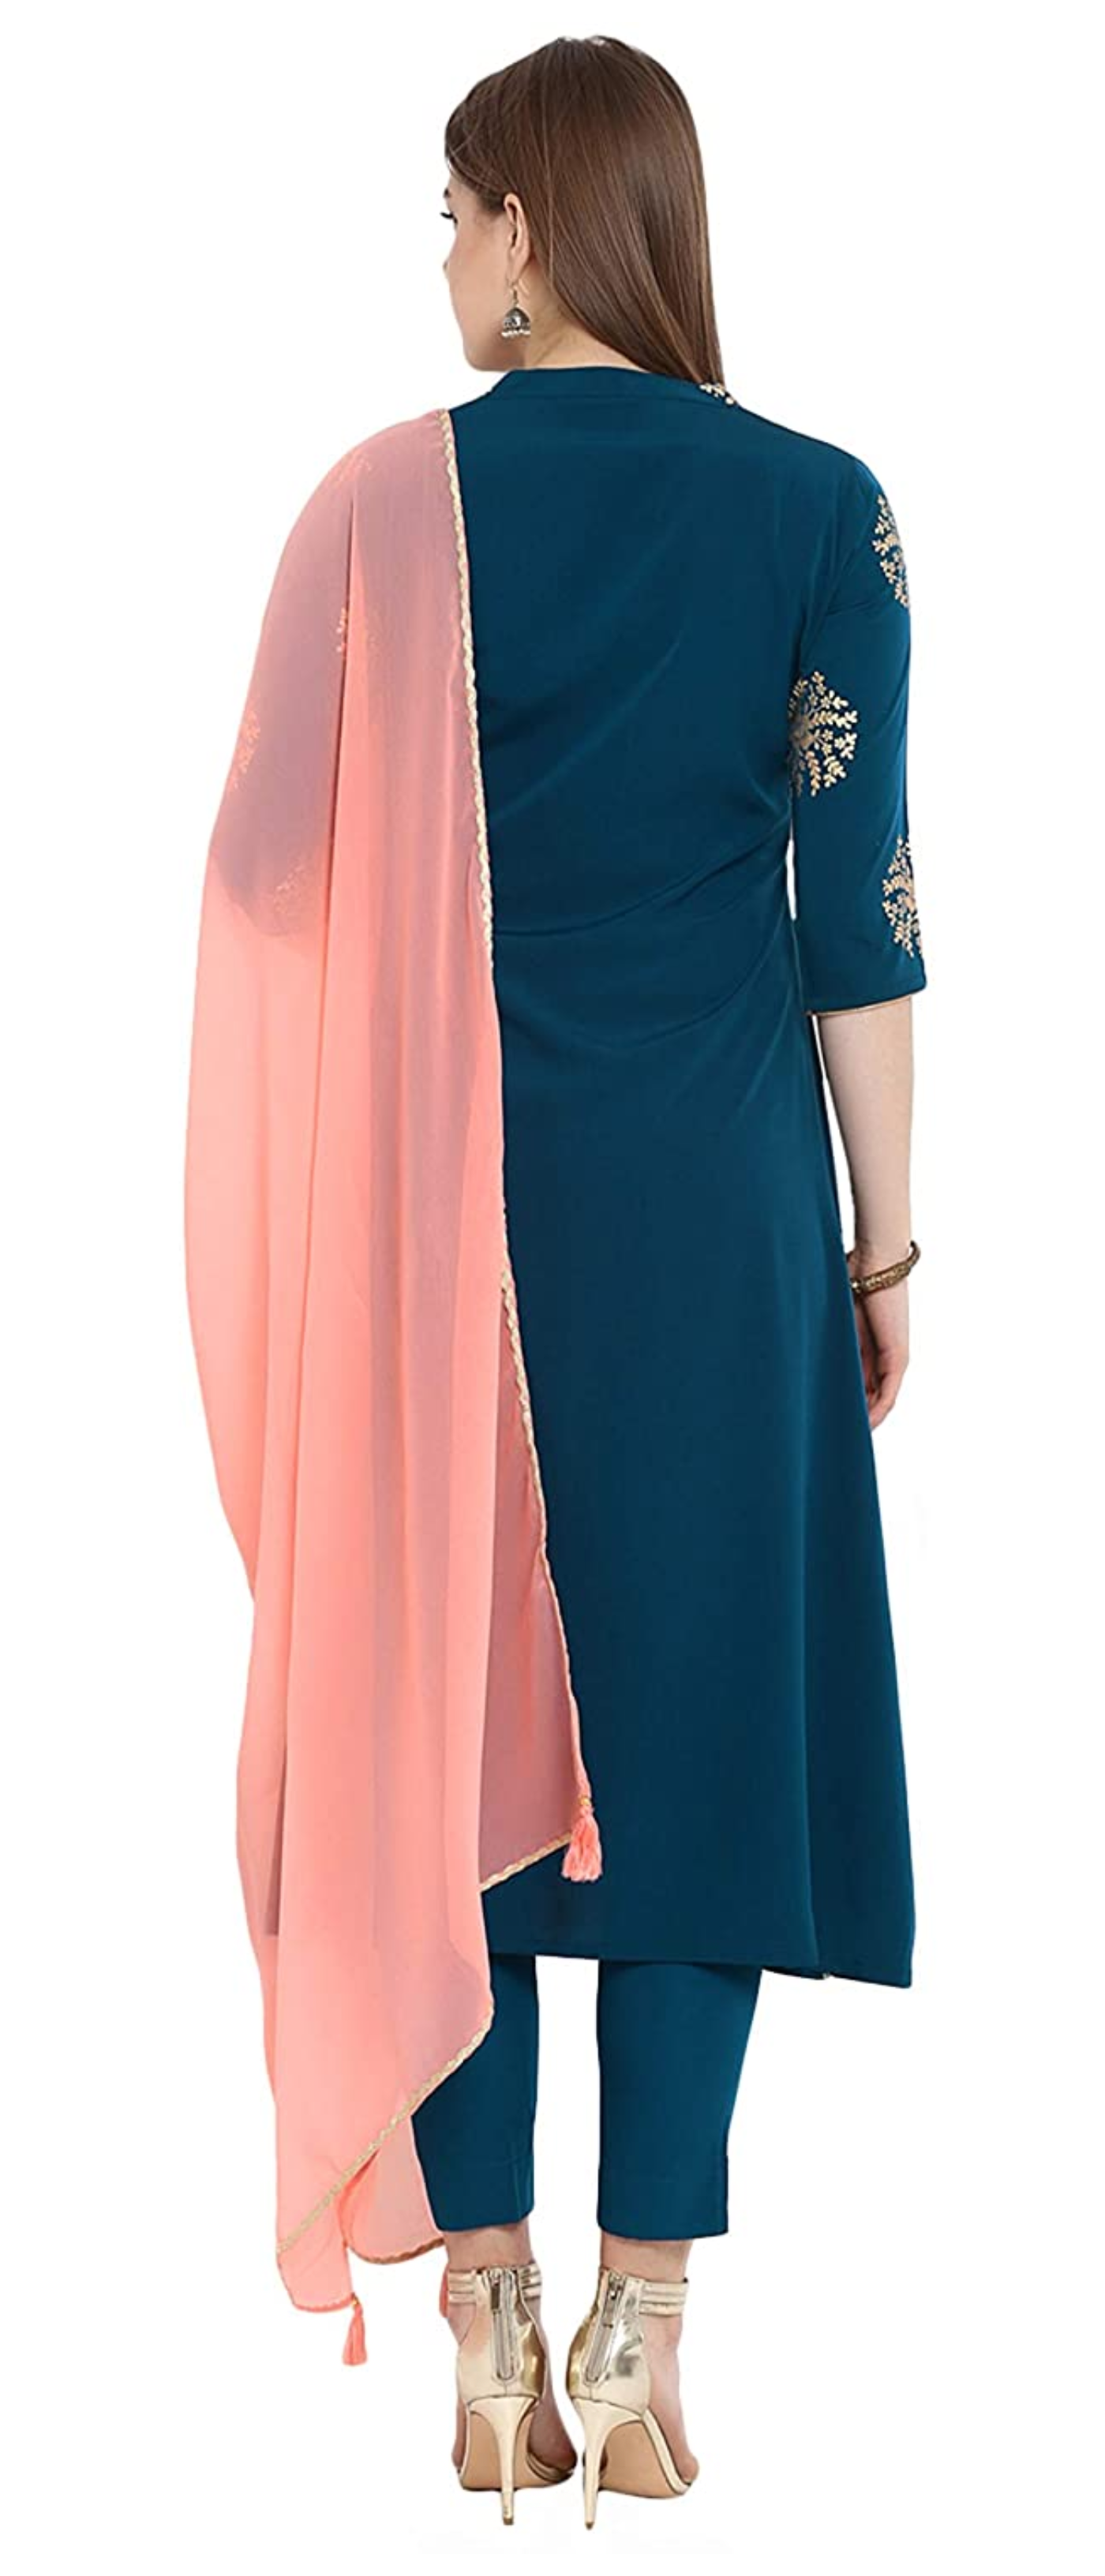 Pink and blue color chiffon patiala dress with crepe pants and chiffon stole